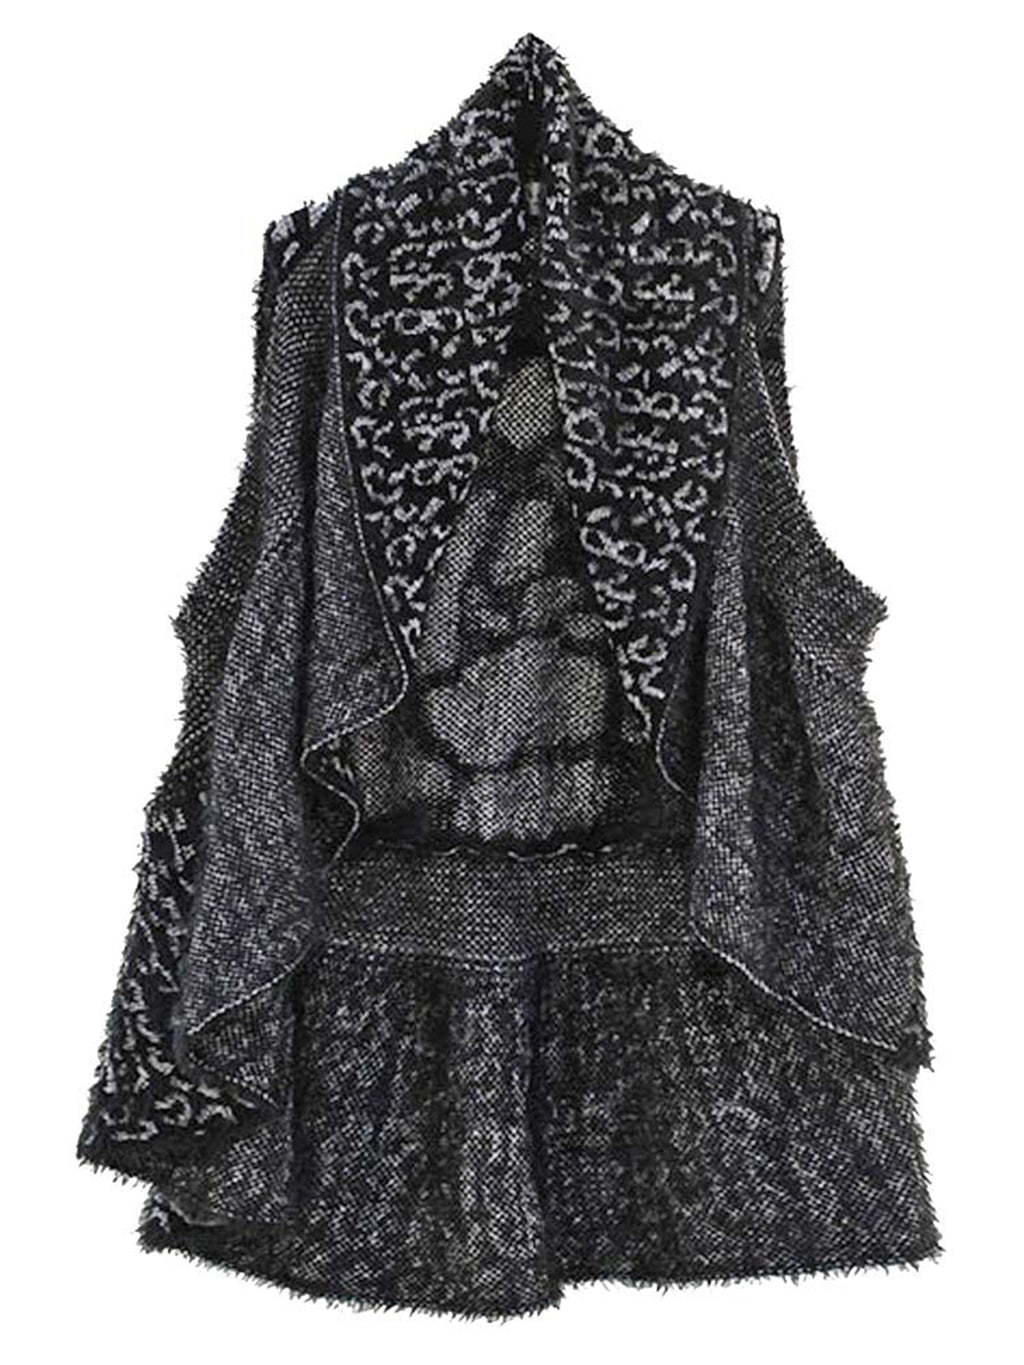 Animal Print Fuzzy Knit Sweater Vest